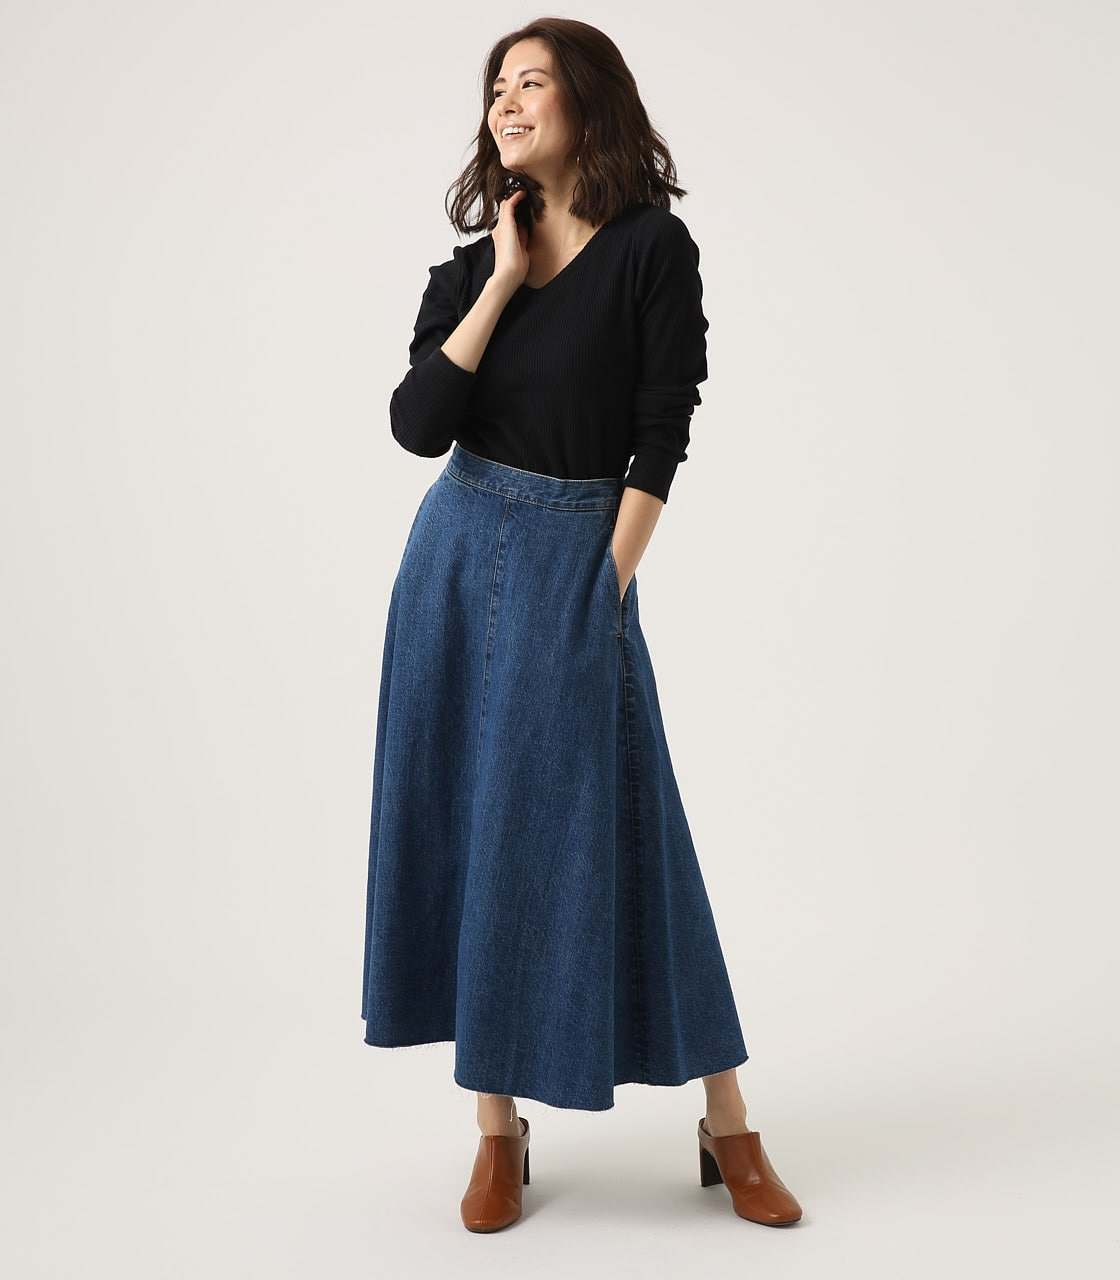 CUT OFF FLARE DENIM LONG SKIRT 詳細画像 BLU 3